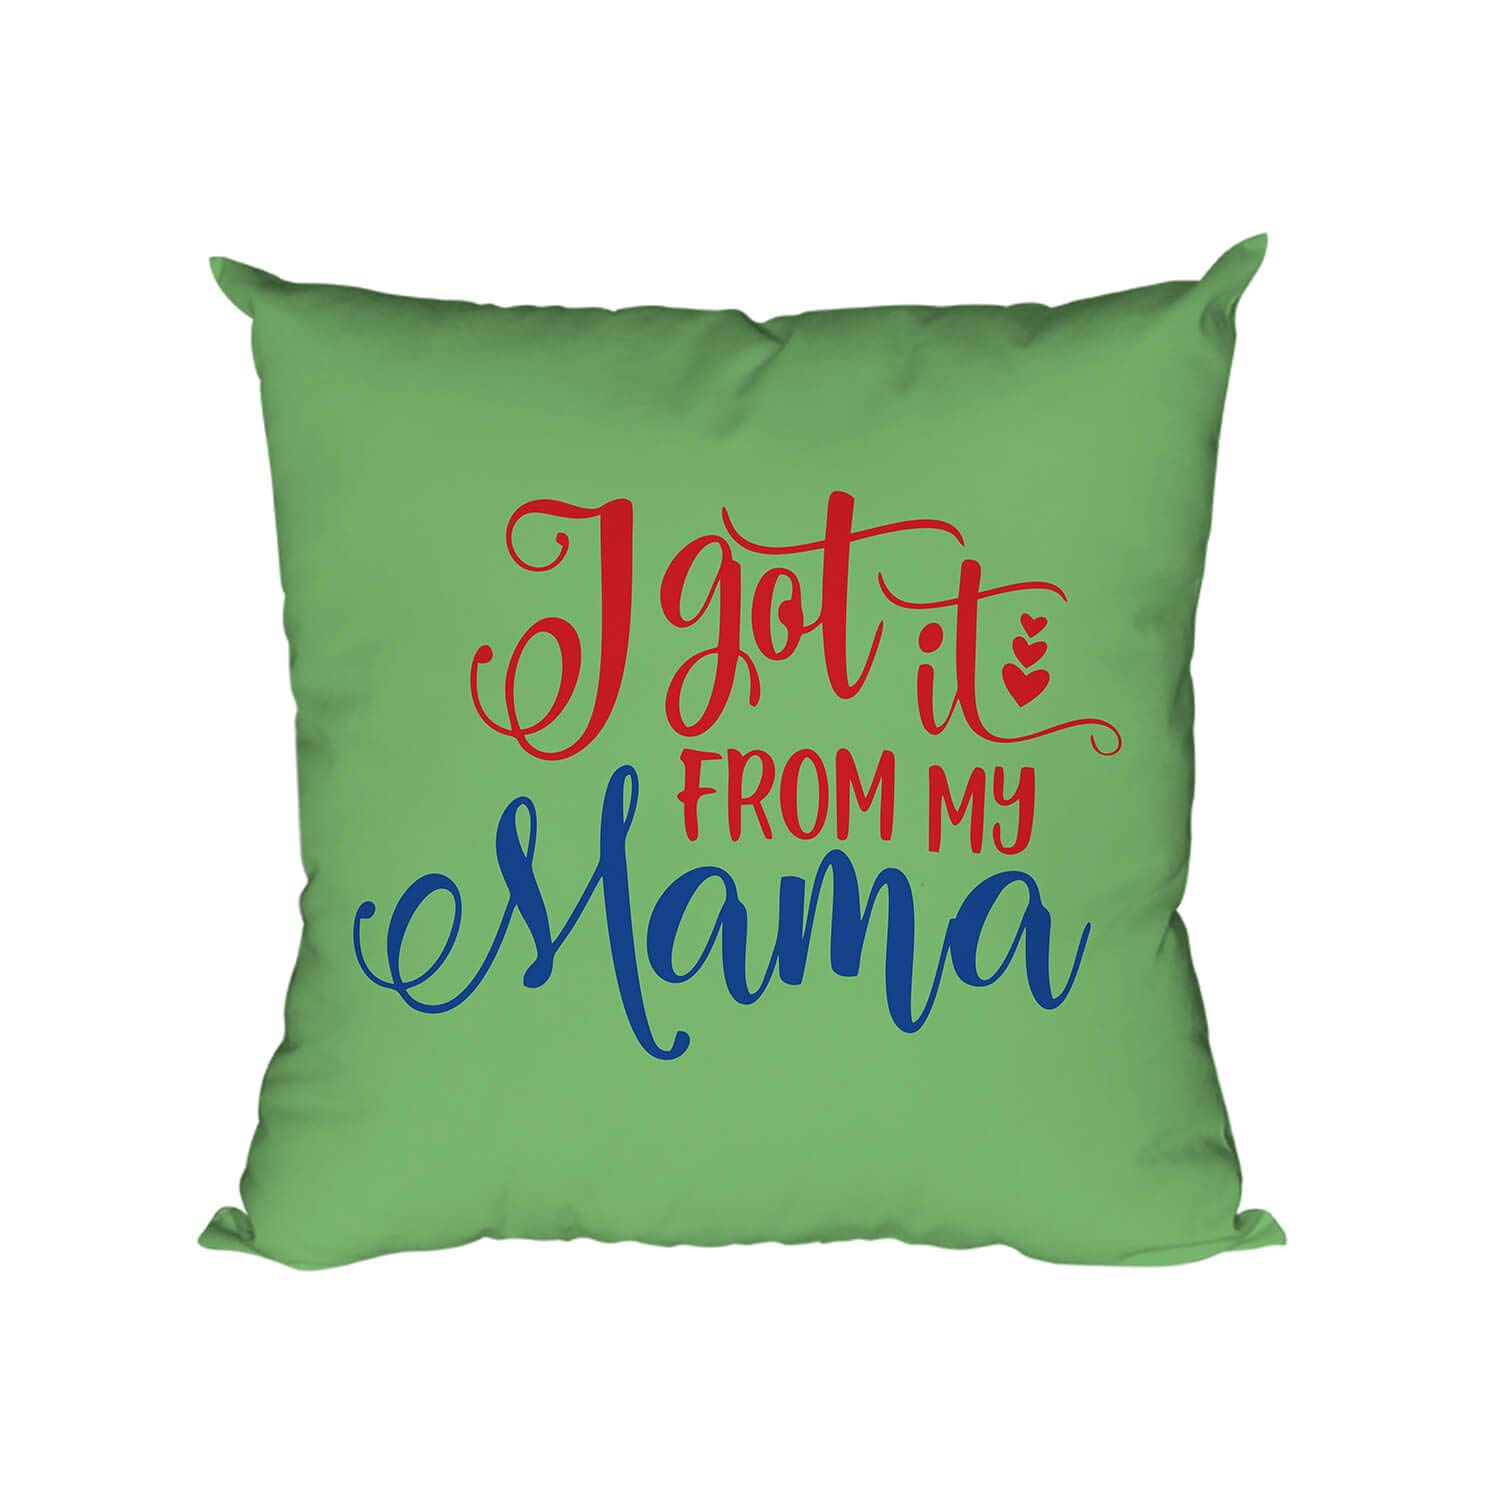 Buy Yaya Cafe For I Got It From My Mama Printed Cushion Covers For Mother Printed Cushion Covers 12x12 Inches For Mother Online At Low Prices In India Amazon In